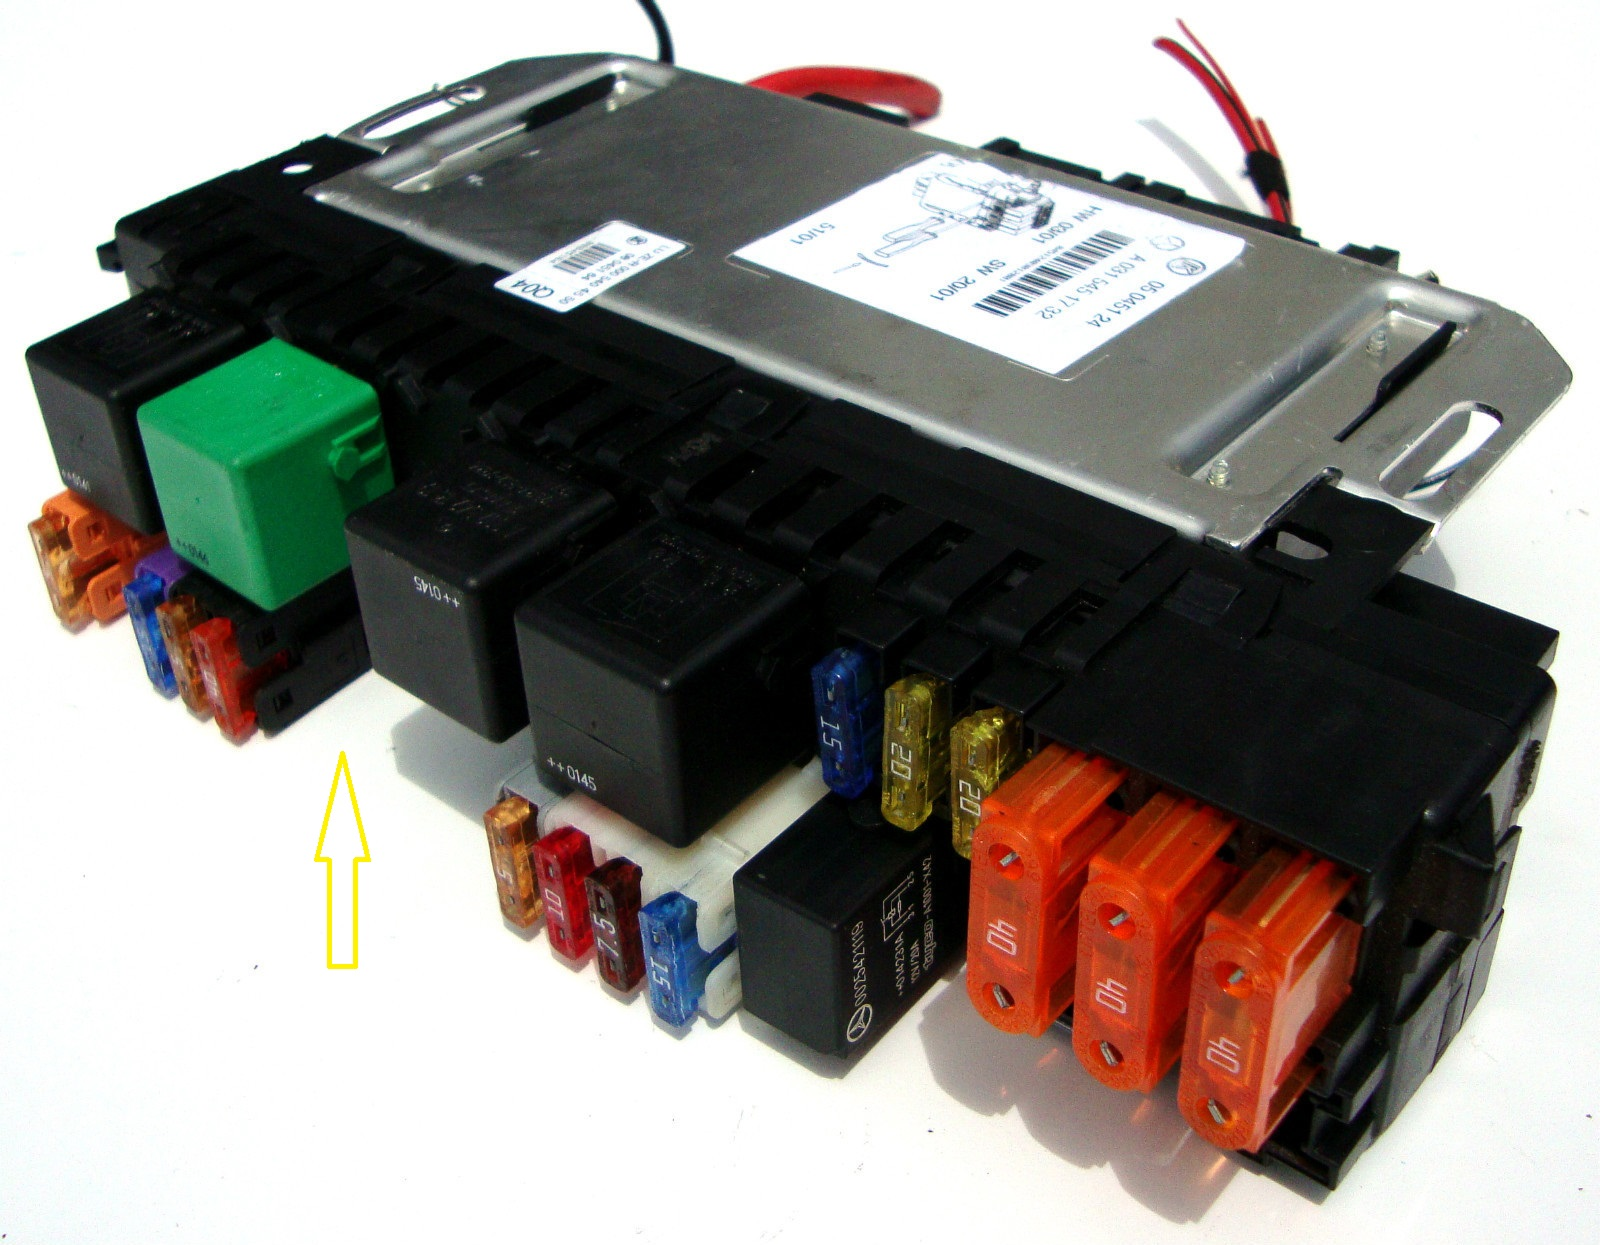 how many fuse boxes are there in merceseds s500 and where fuse diagram for 2004 mercedes c230 fuse diagram for 2000 mercedes s430